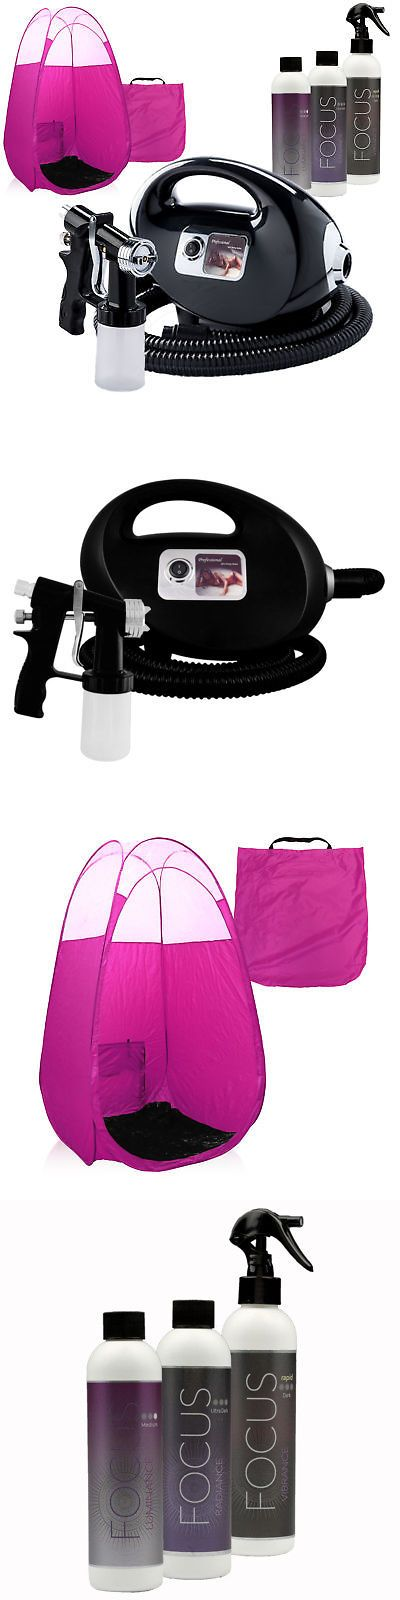 Airbrush Tanning Kits: Black Fascination Fx Spray Tanning Machine With Focus Tan Solution And Pink Tent -> BUY IT NOW ONLY: $219 on eBay!